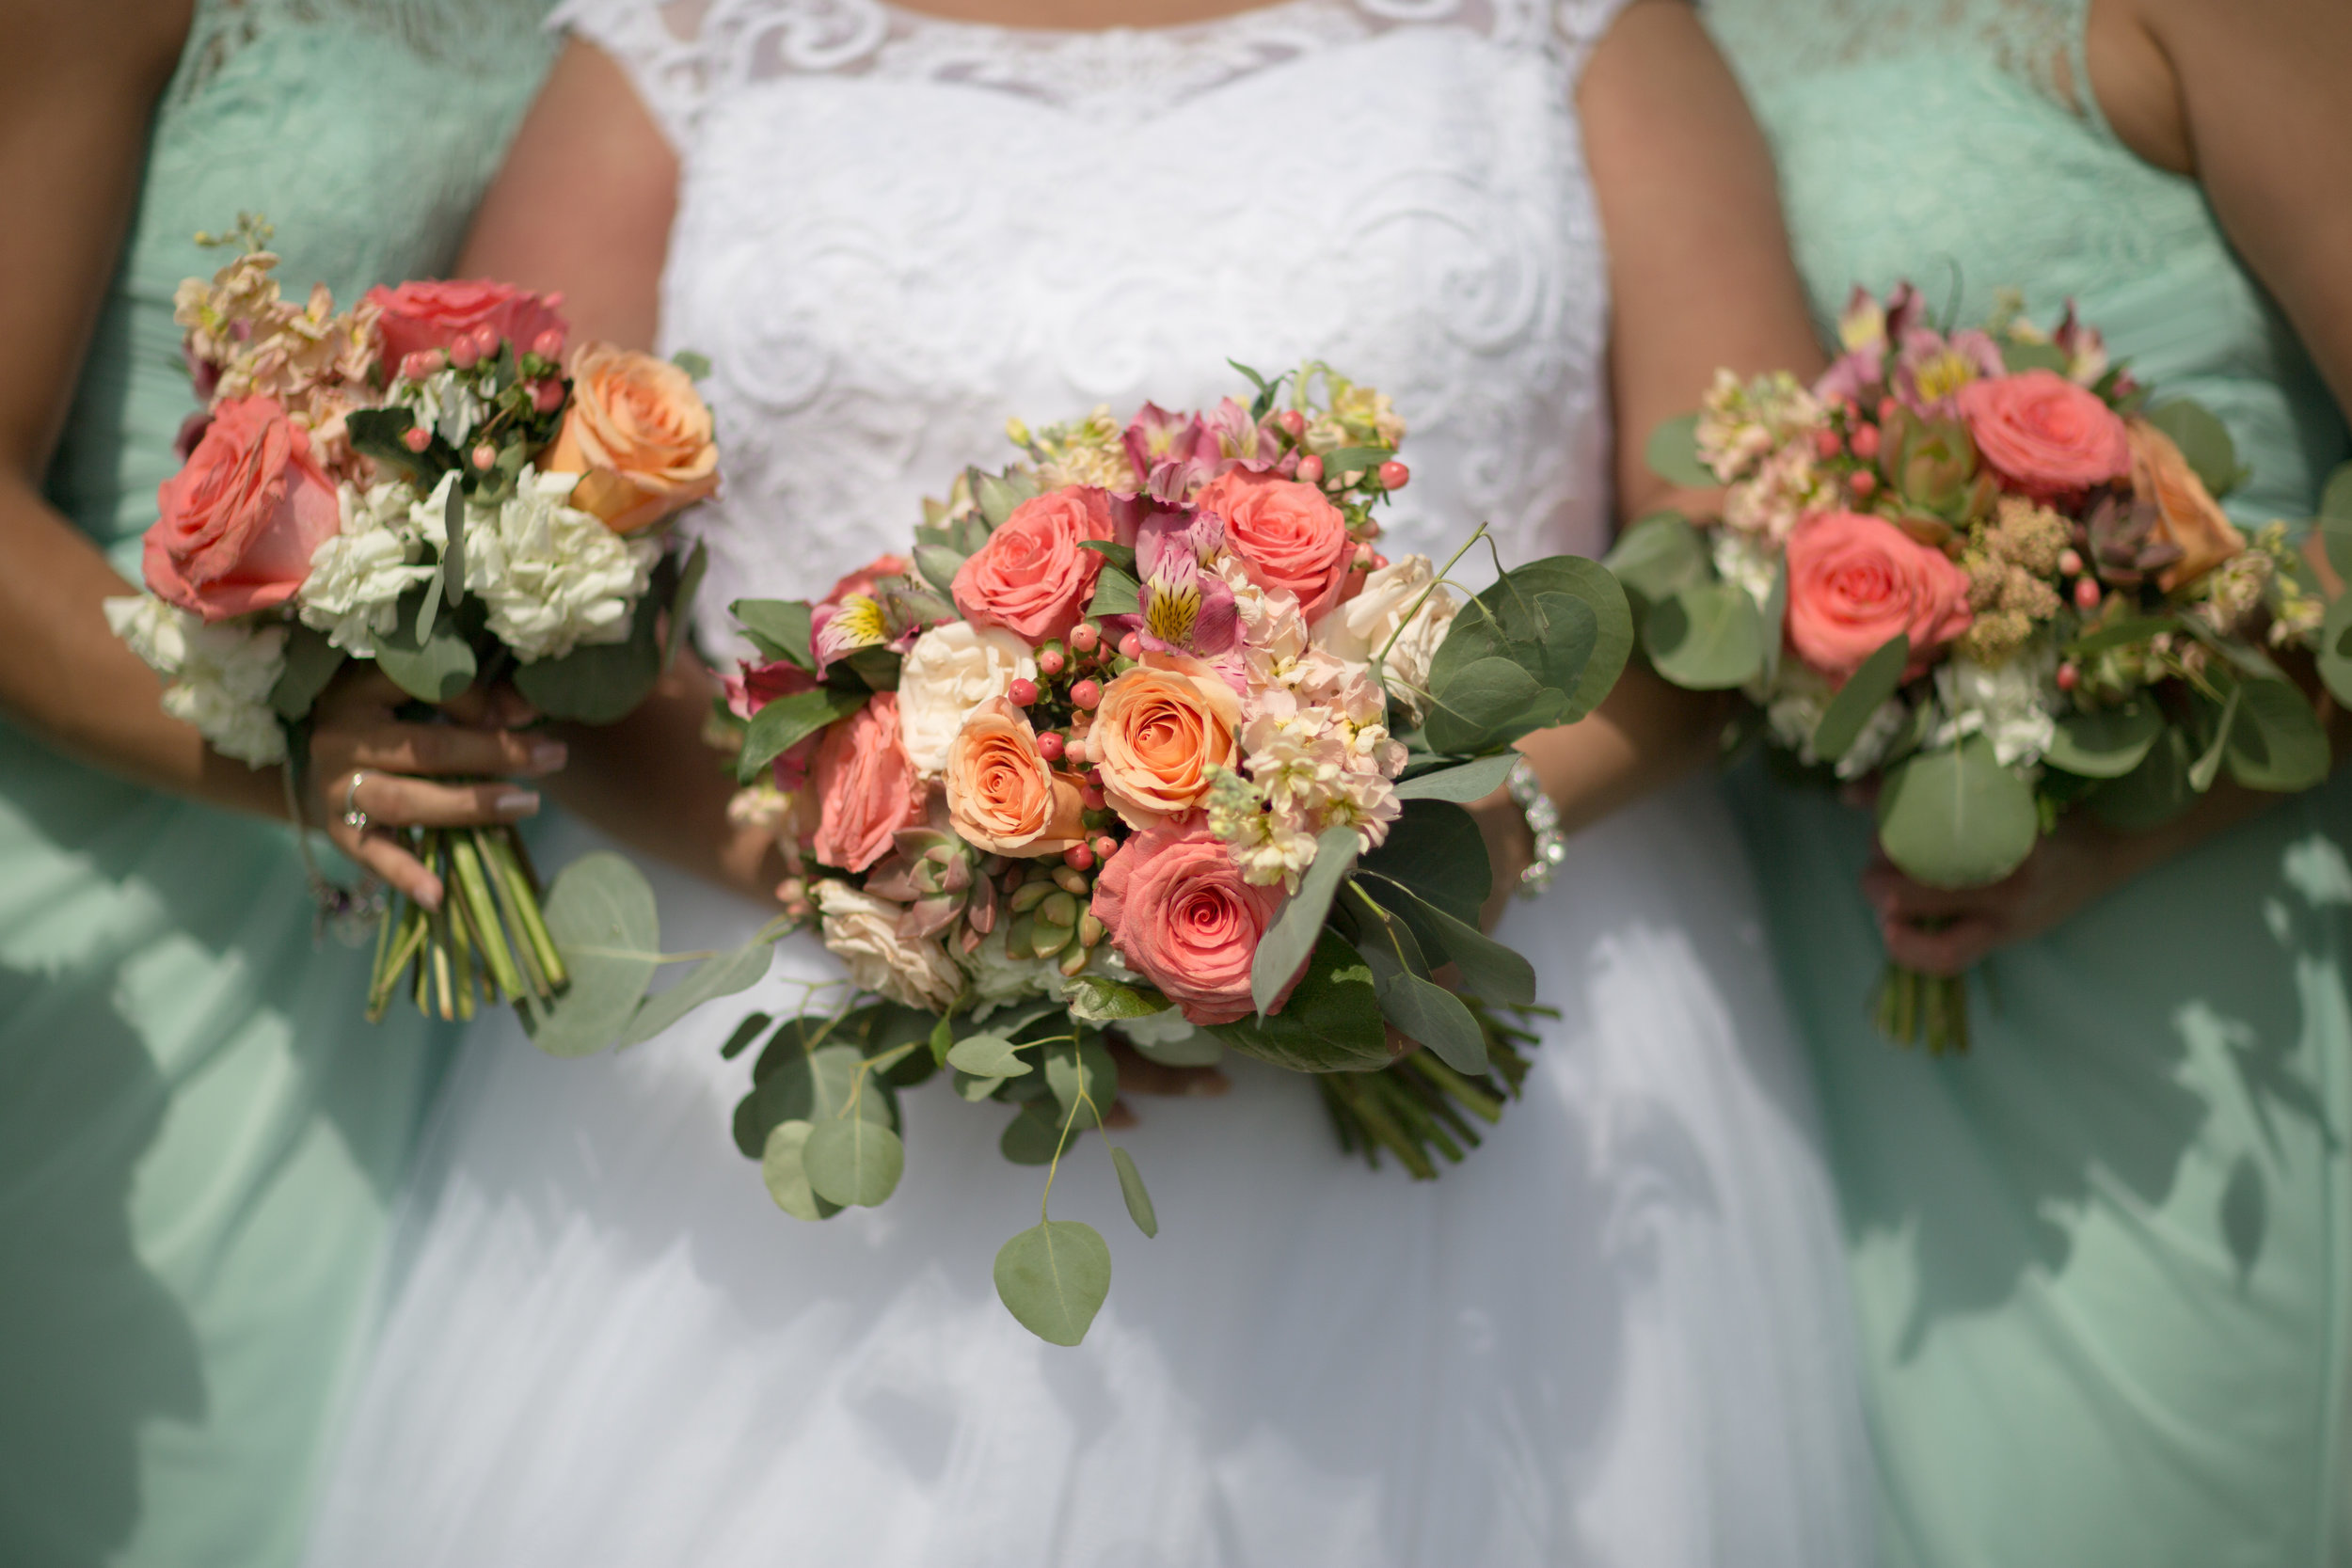 Shannon loves flowers bouquets shot by matt blasing photography